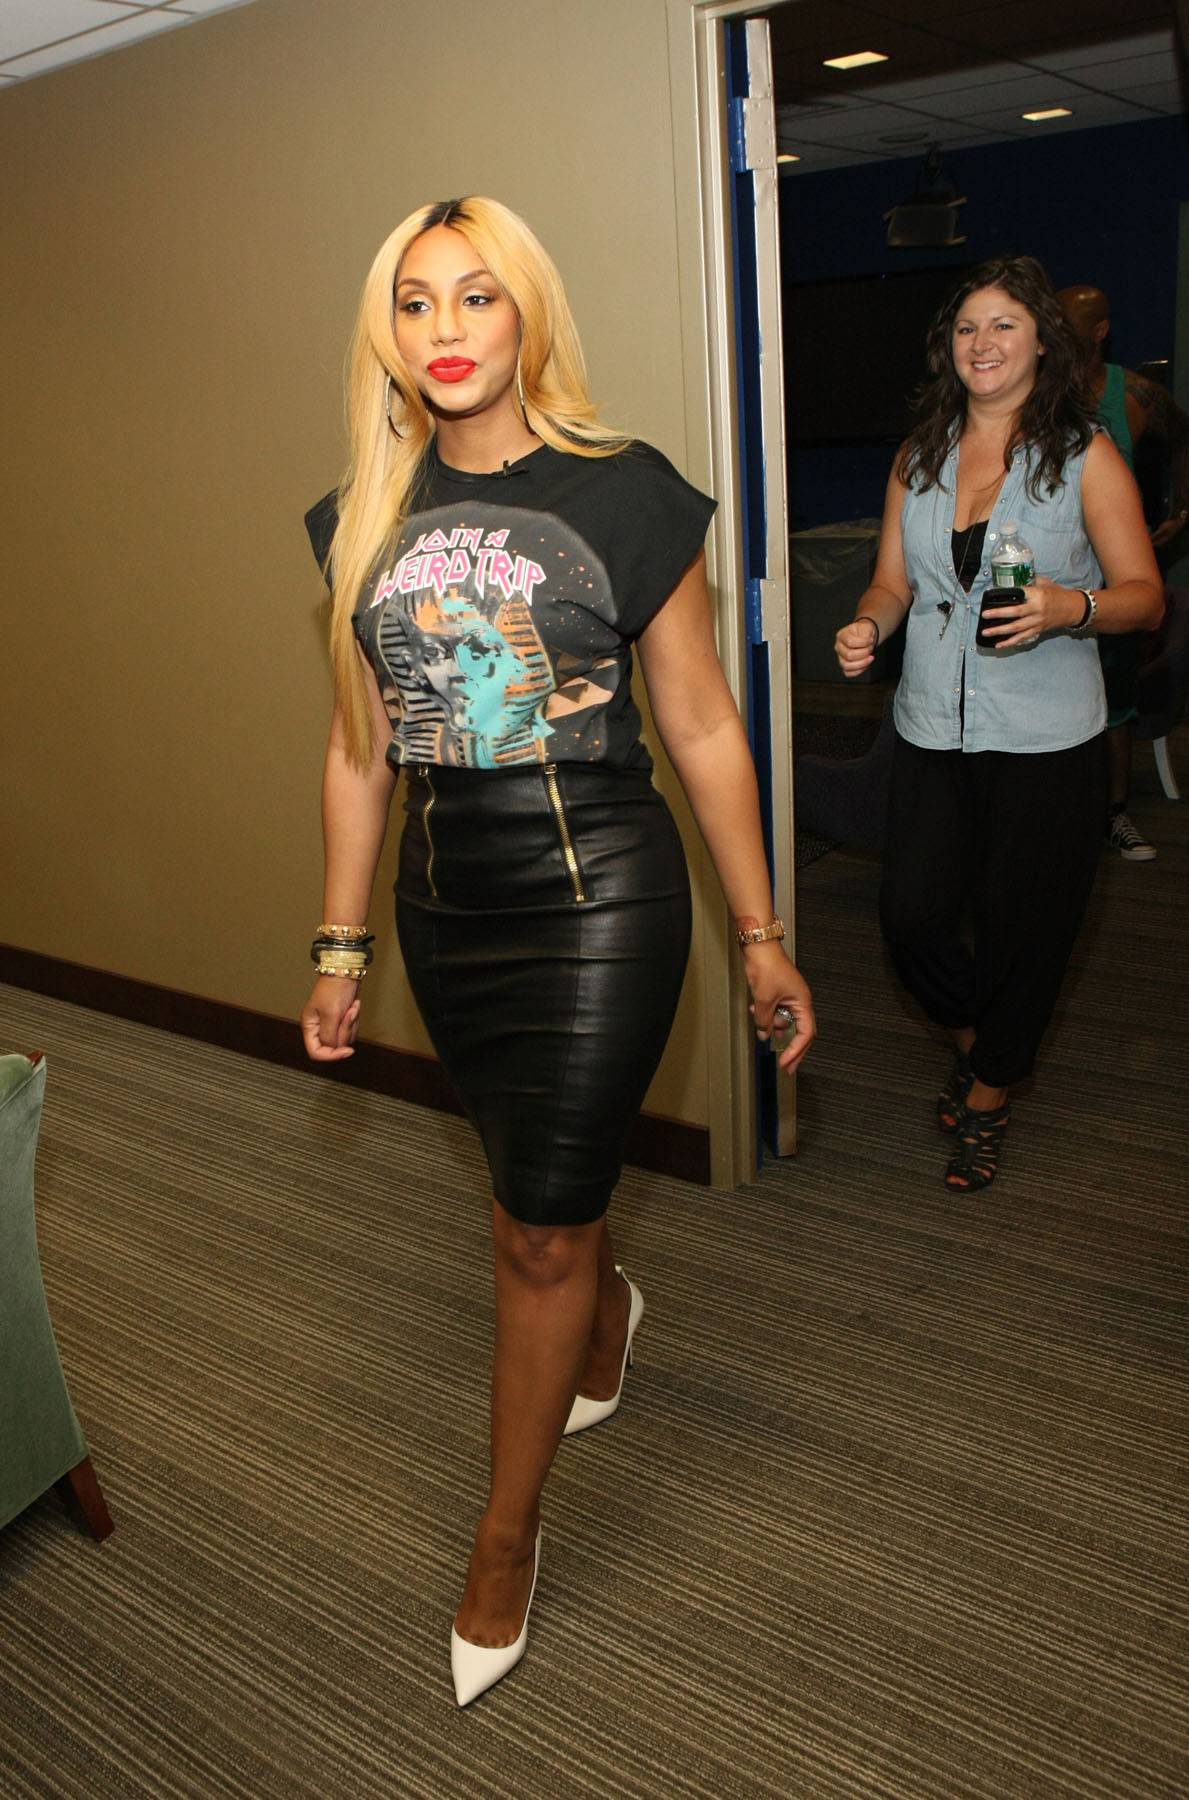 She Has Arrived - TV personality/recording artist Tamar Braxton visits 106 and hits the backstage. (Photo: Bennett Raglin/BET/Getty Images for BET)